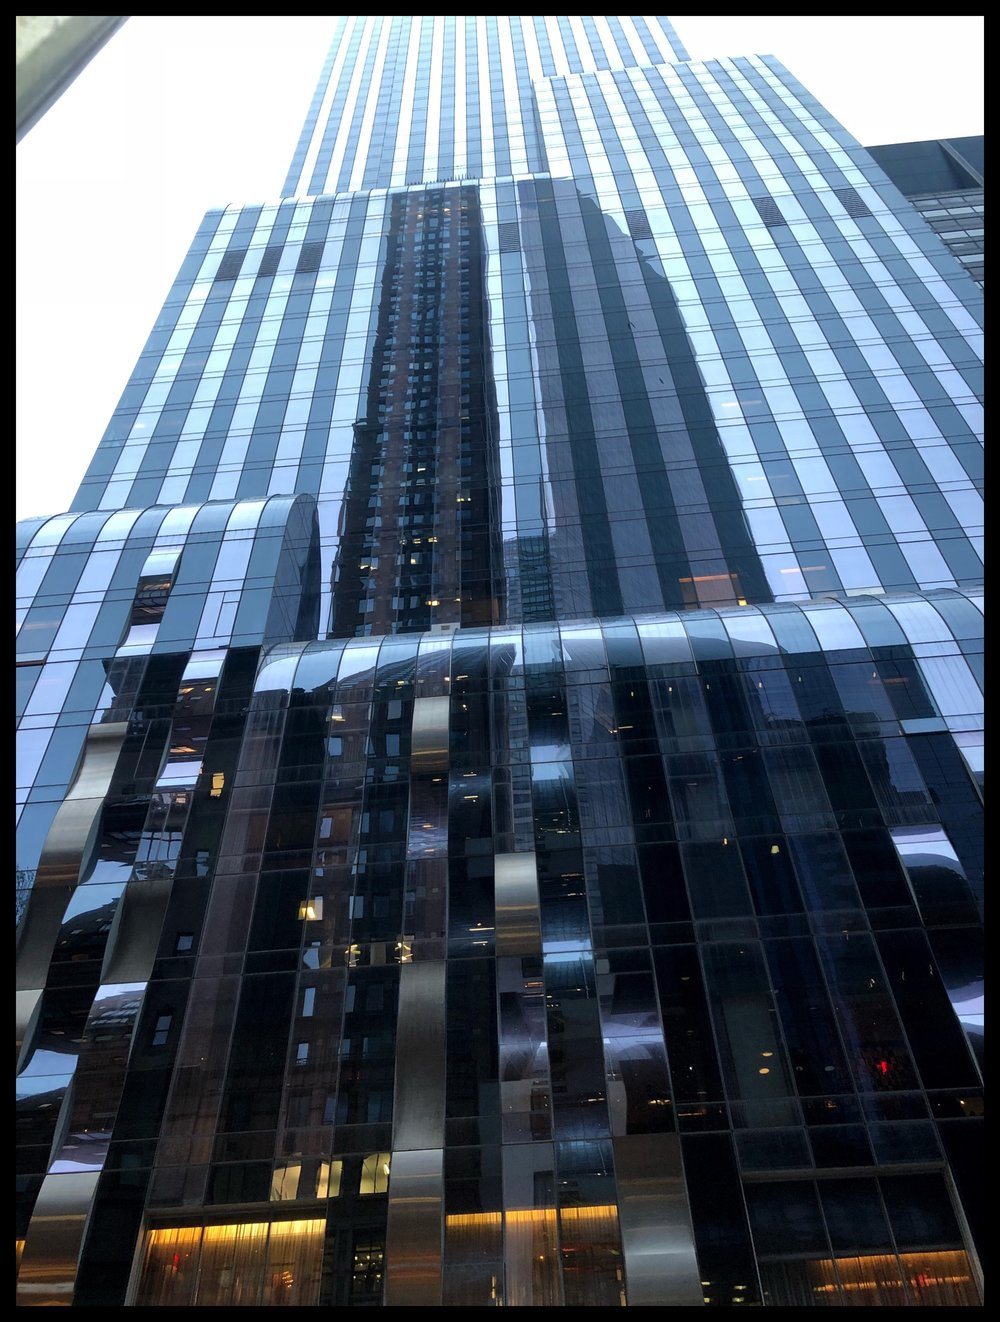 Park Hyatt, NYC - 57th St & 7th Ave